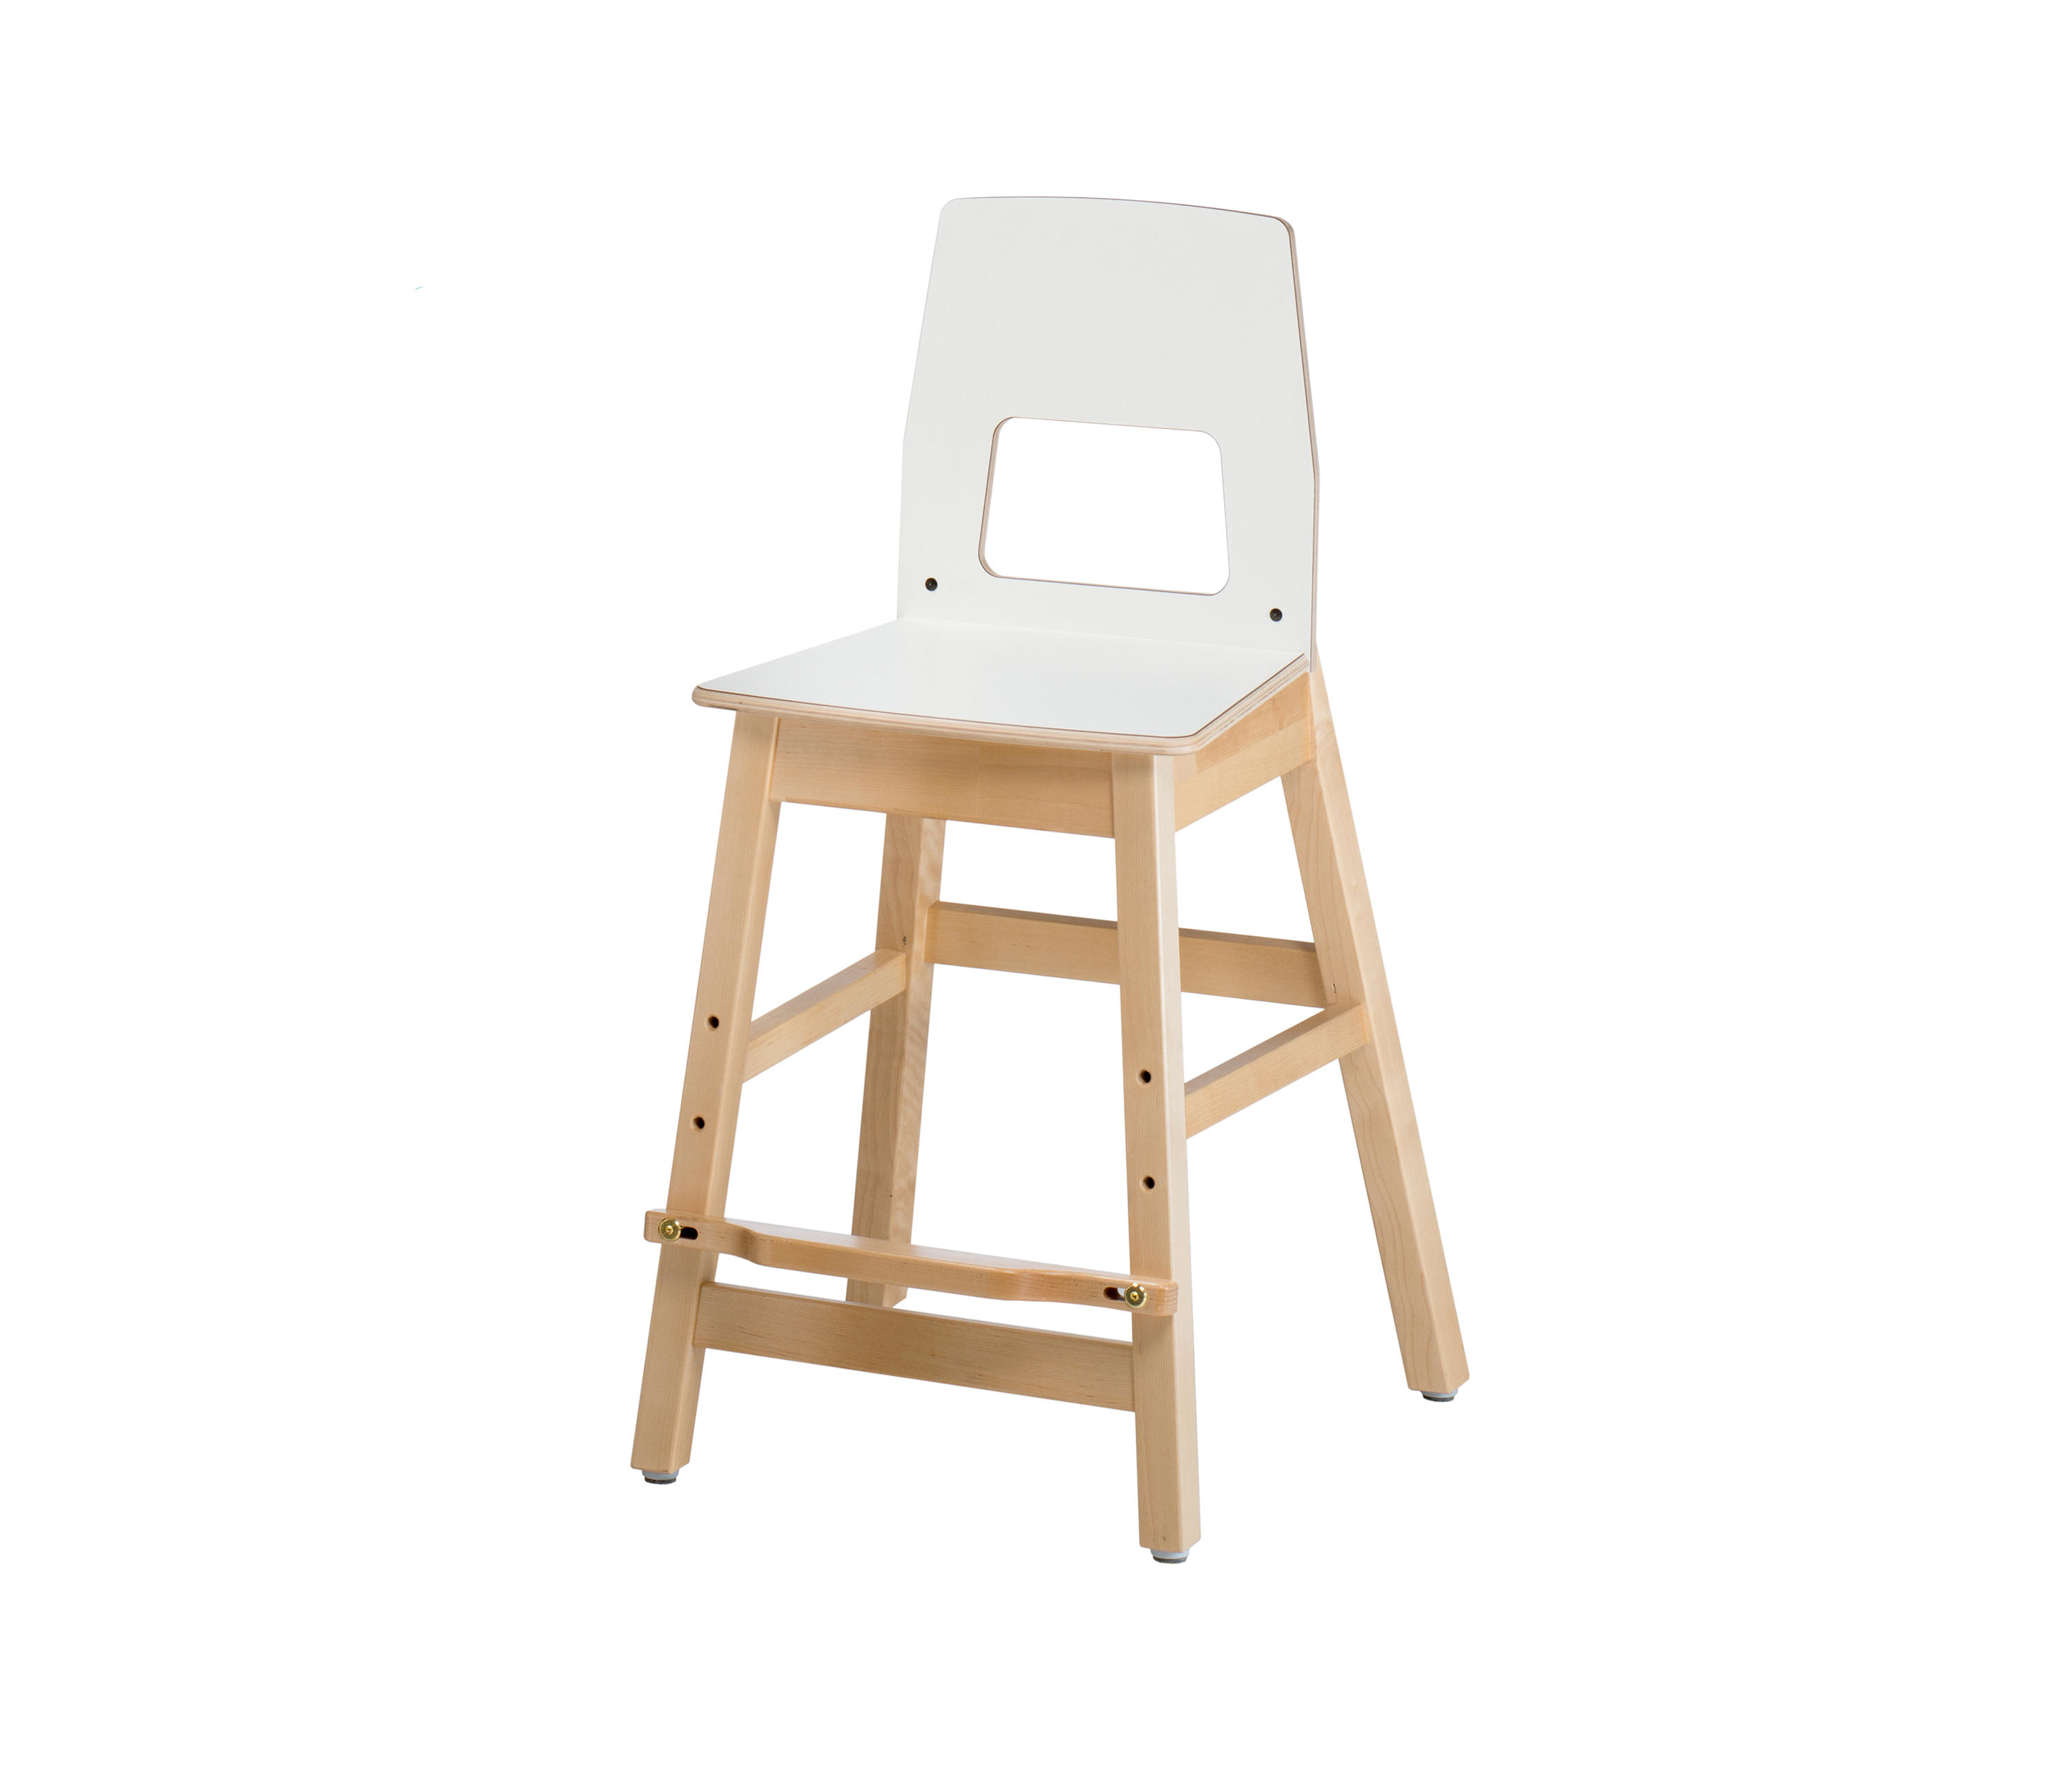 HIGH CHAIR FOR CHILDREN OTTO OT450 Kids chairs from Woodi